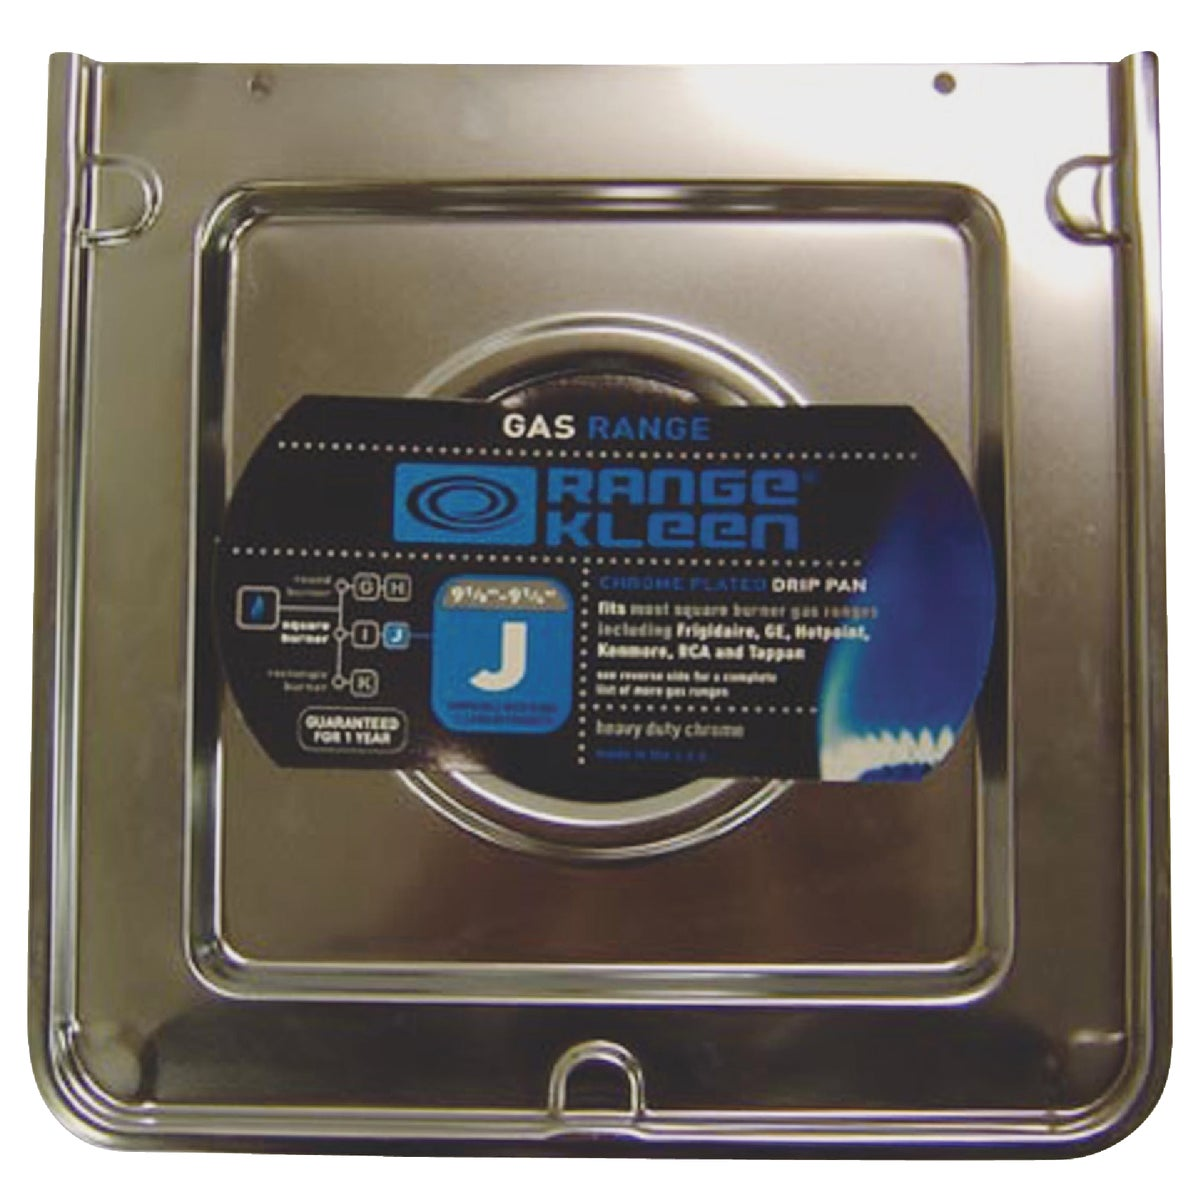 Range Kleen SQUARE REFLECTOR GAS PAN SGP-401